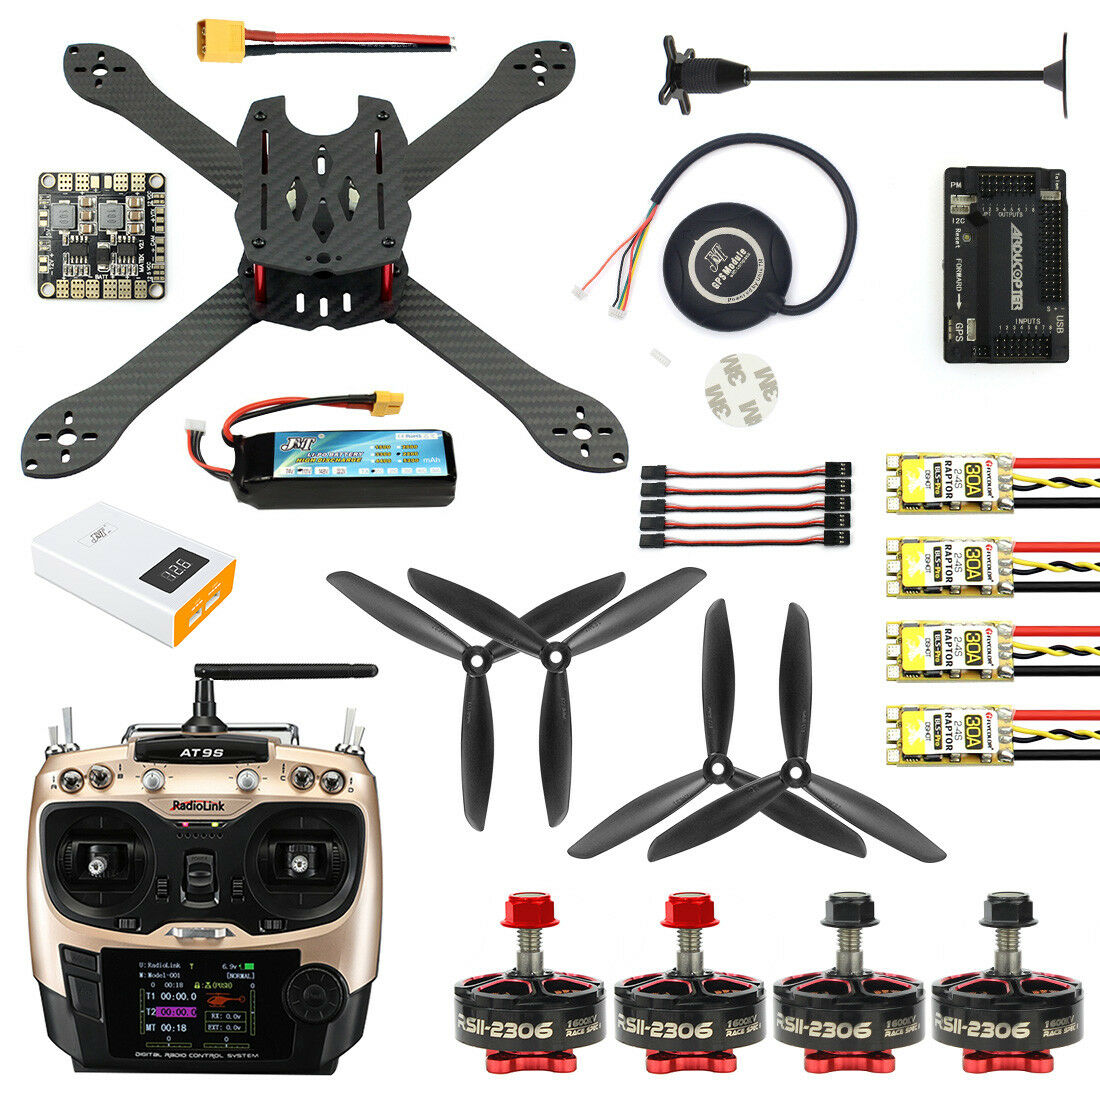 disponibile JMT 2.4G 10CH 300mm Brushless GPS Drone Drone Drone APM 2.8 DIY Combo Kit  RC Quadcopter  tempo libero